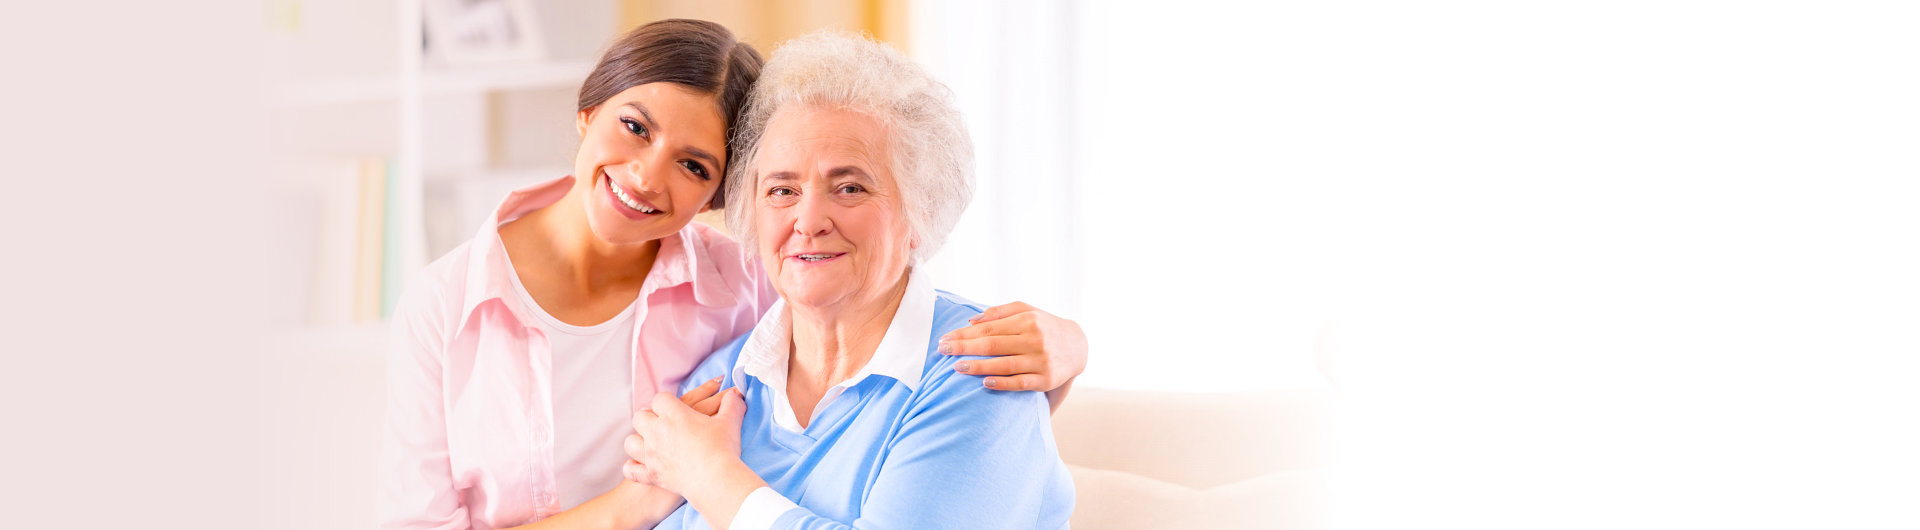 elderly woman and young woman smiling